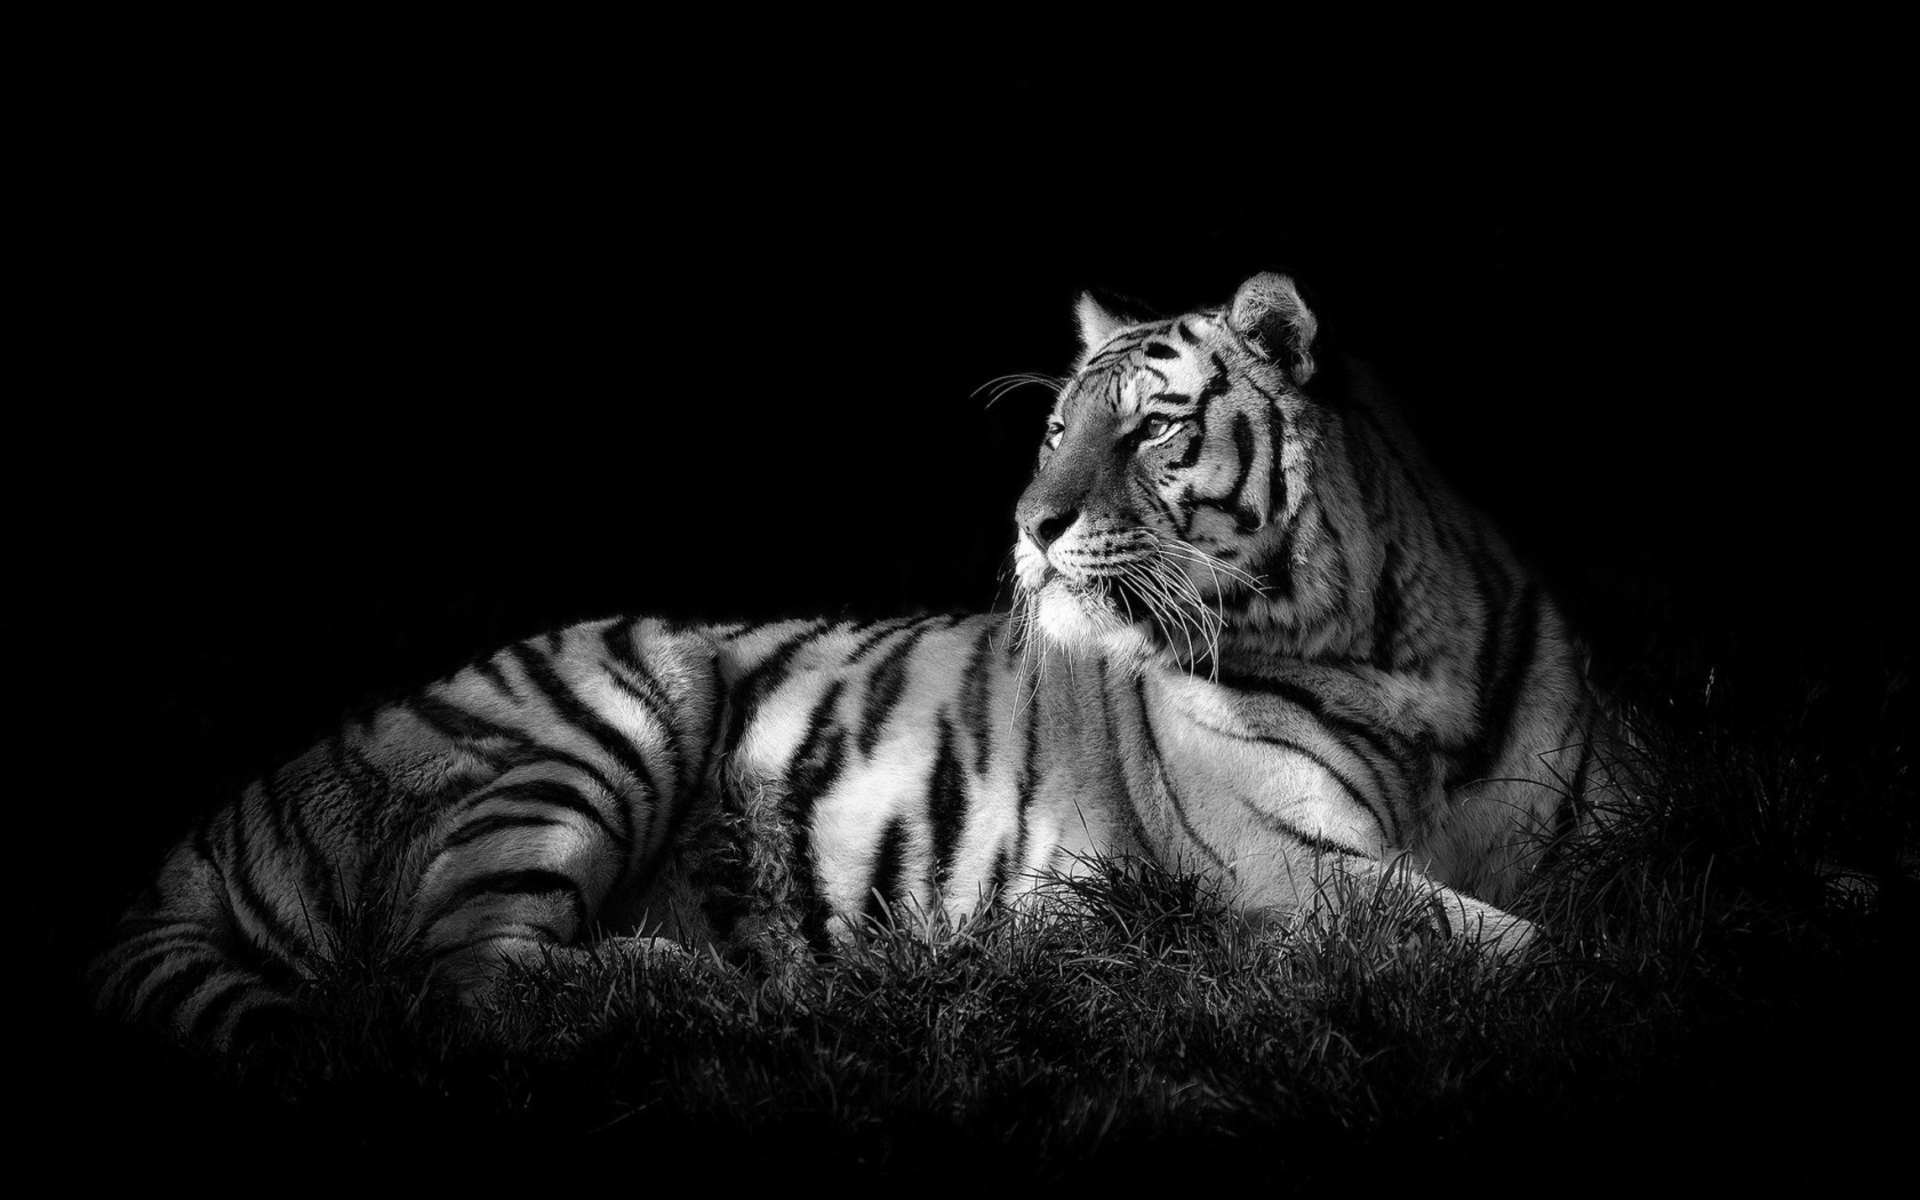 Nature Lion Big Cats Fury Angry Portrait Monochrome: White Tiger Full HD Wallpaper And Background Image